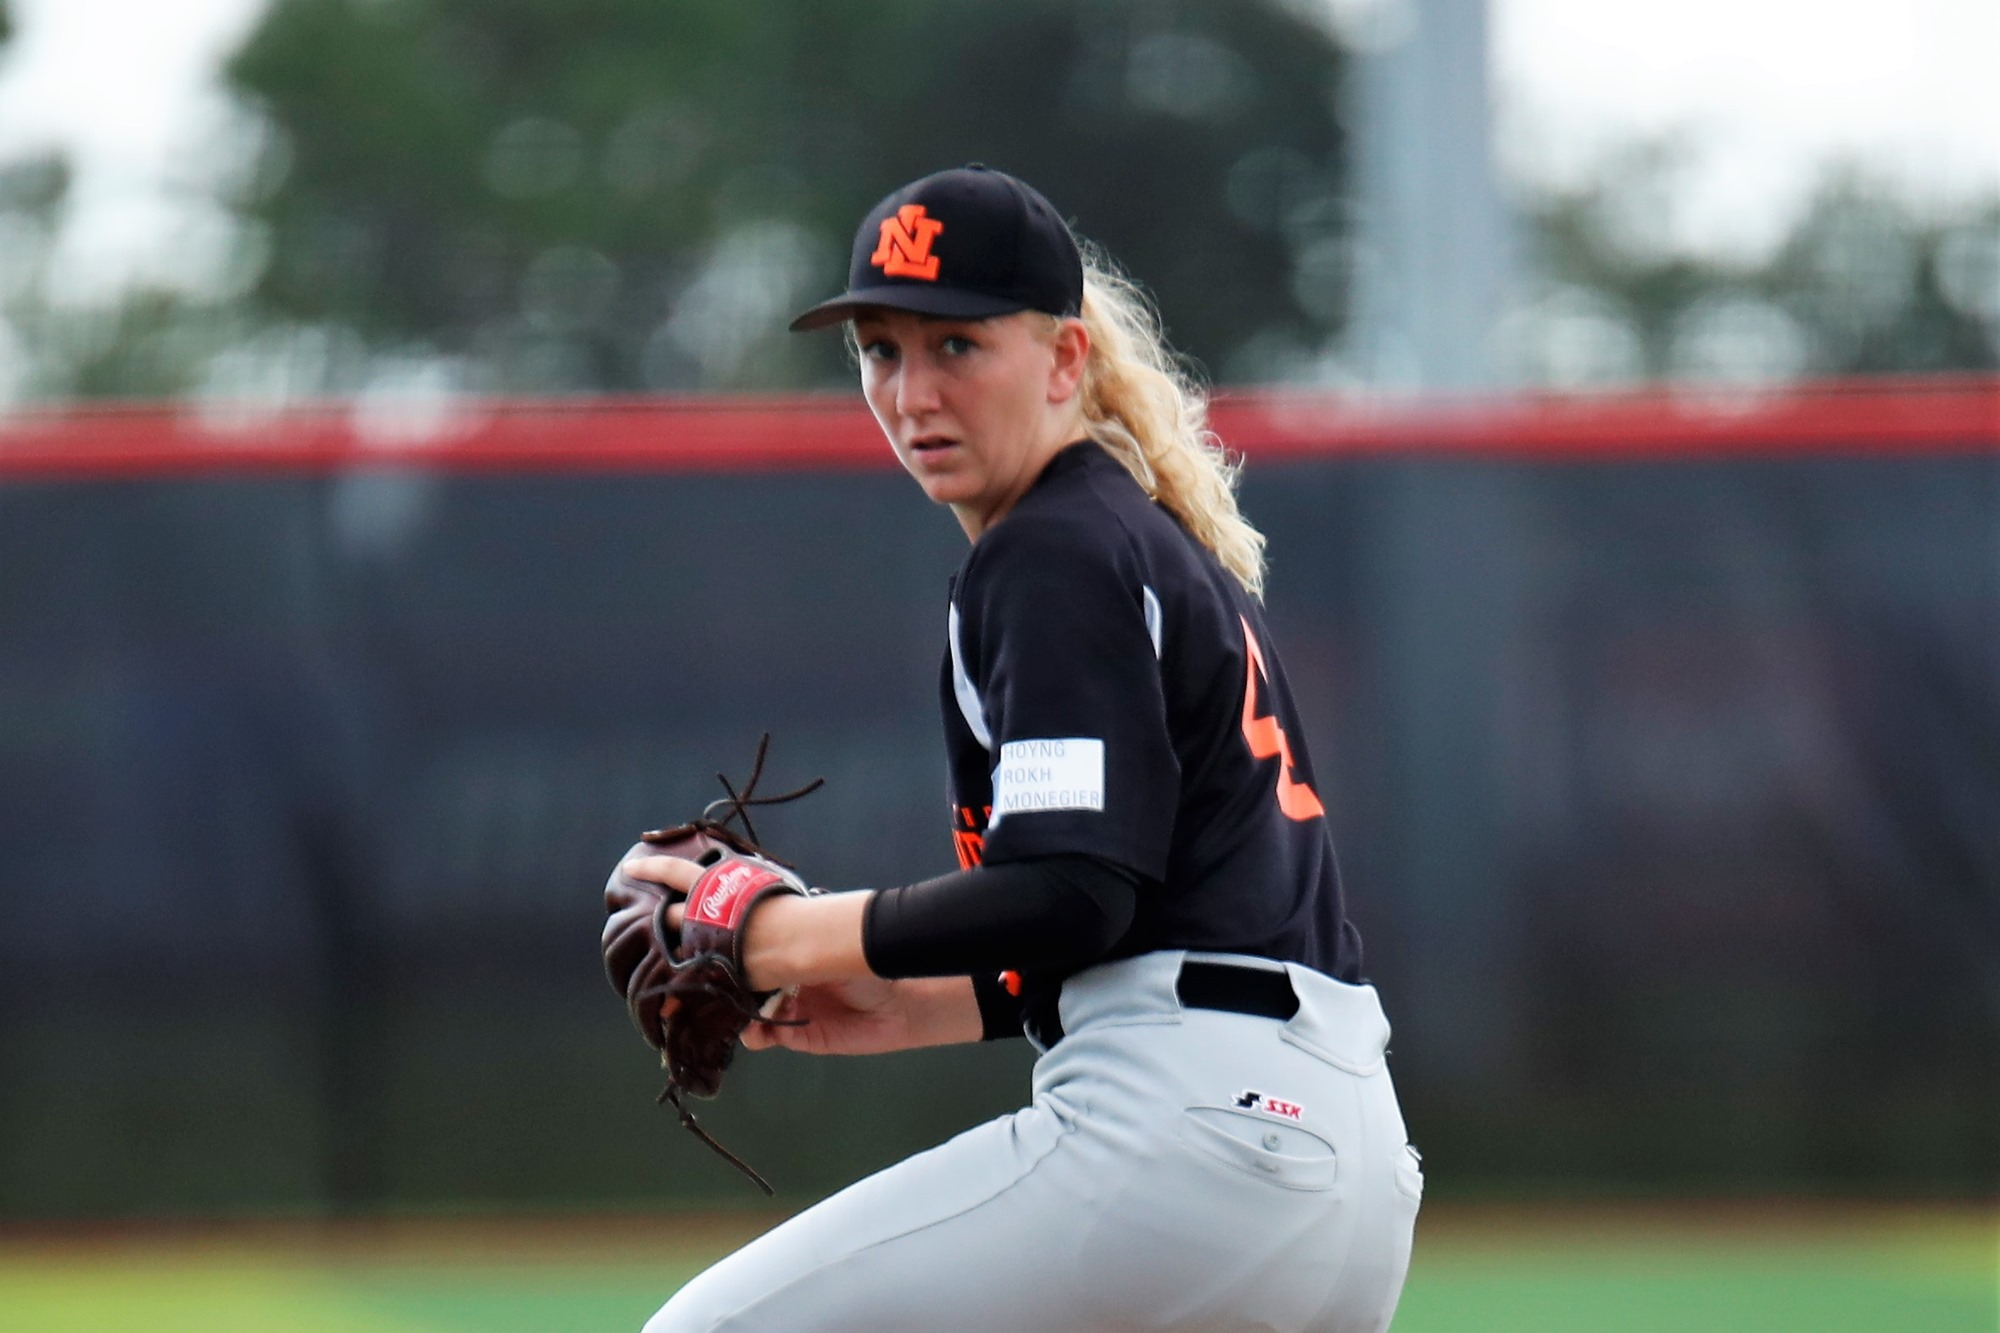 Dutch pitcher Loes Asmus didn't receive much help from her defense